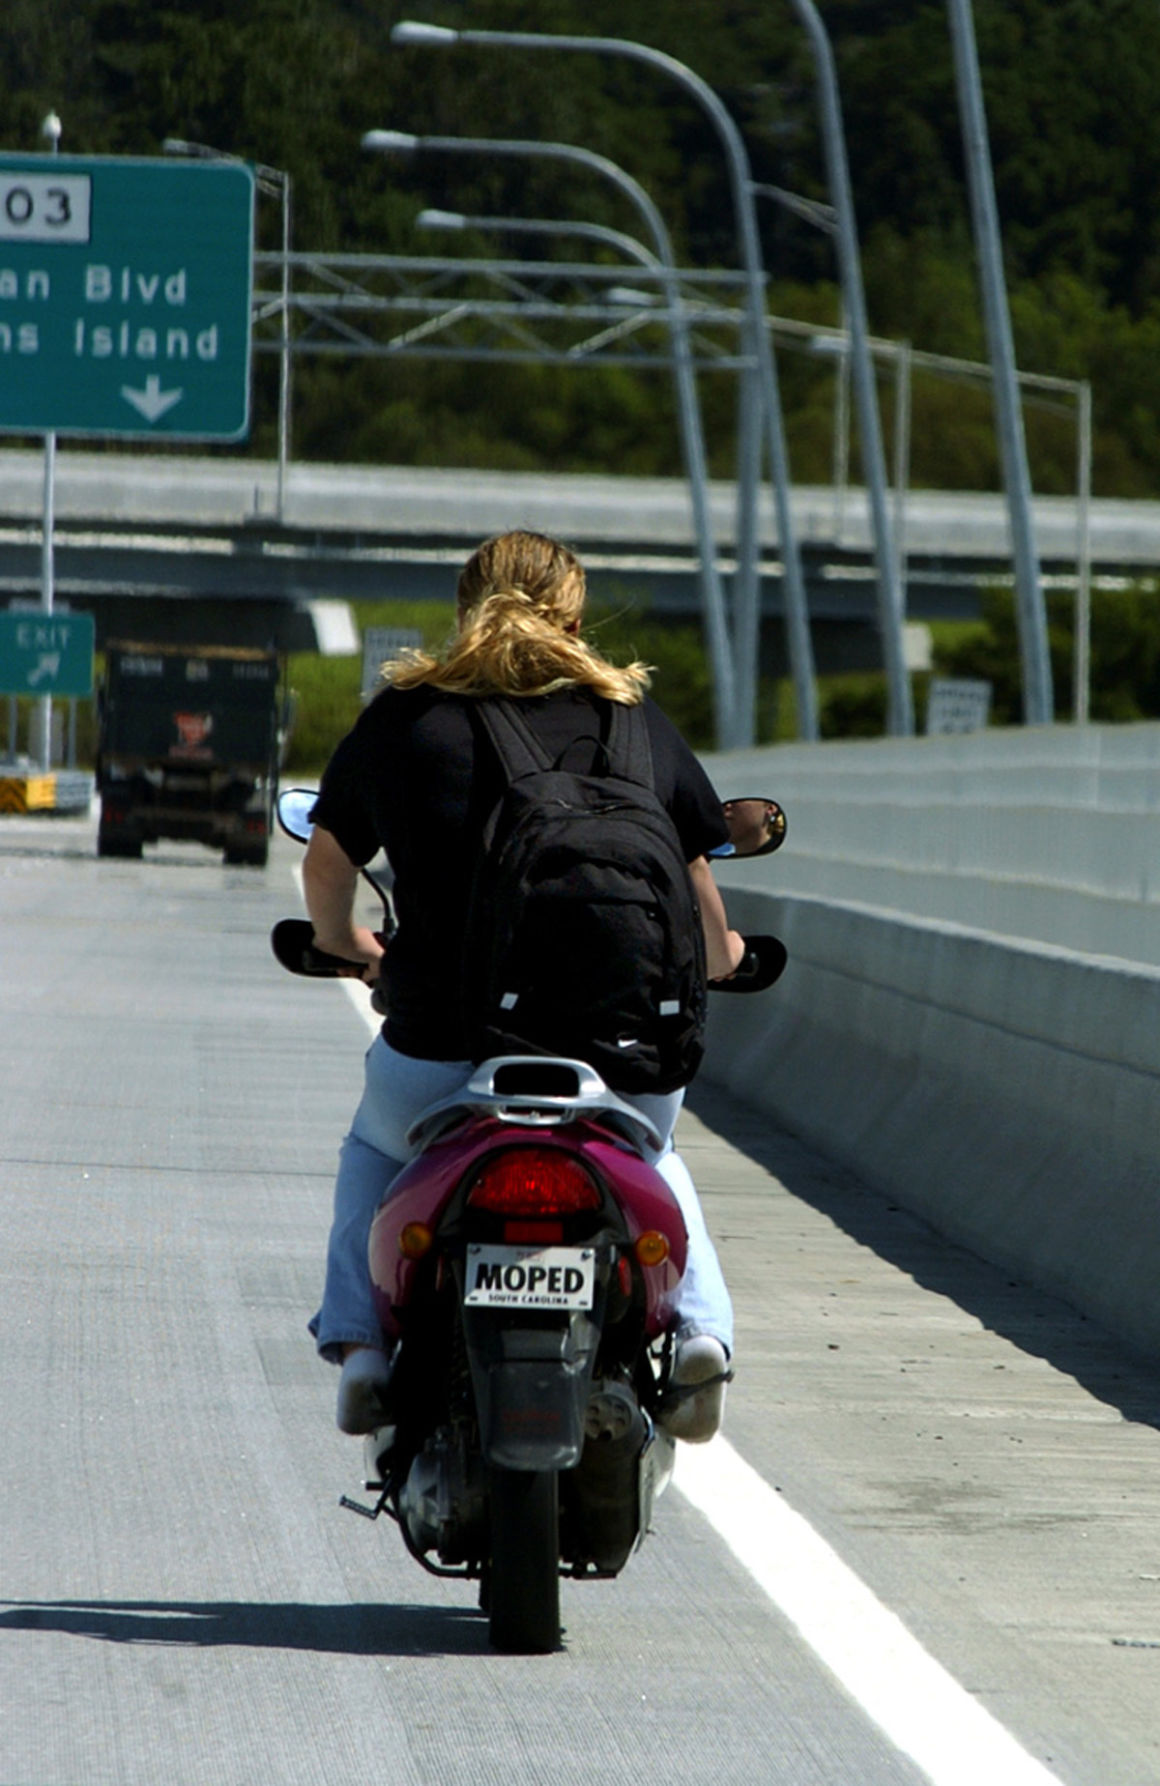 Lawmakers trying to close moped loophole in rural vs. urban debate